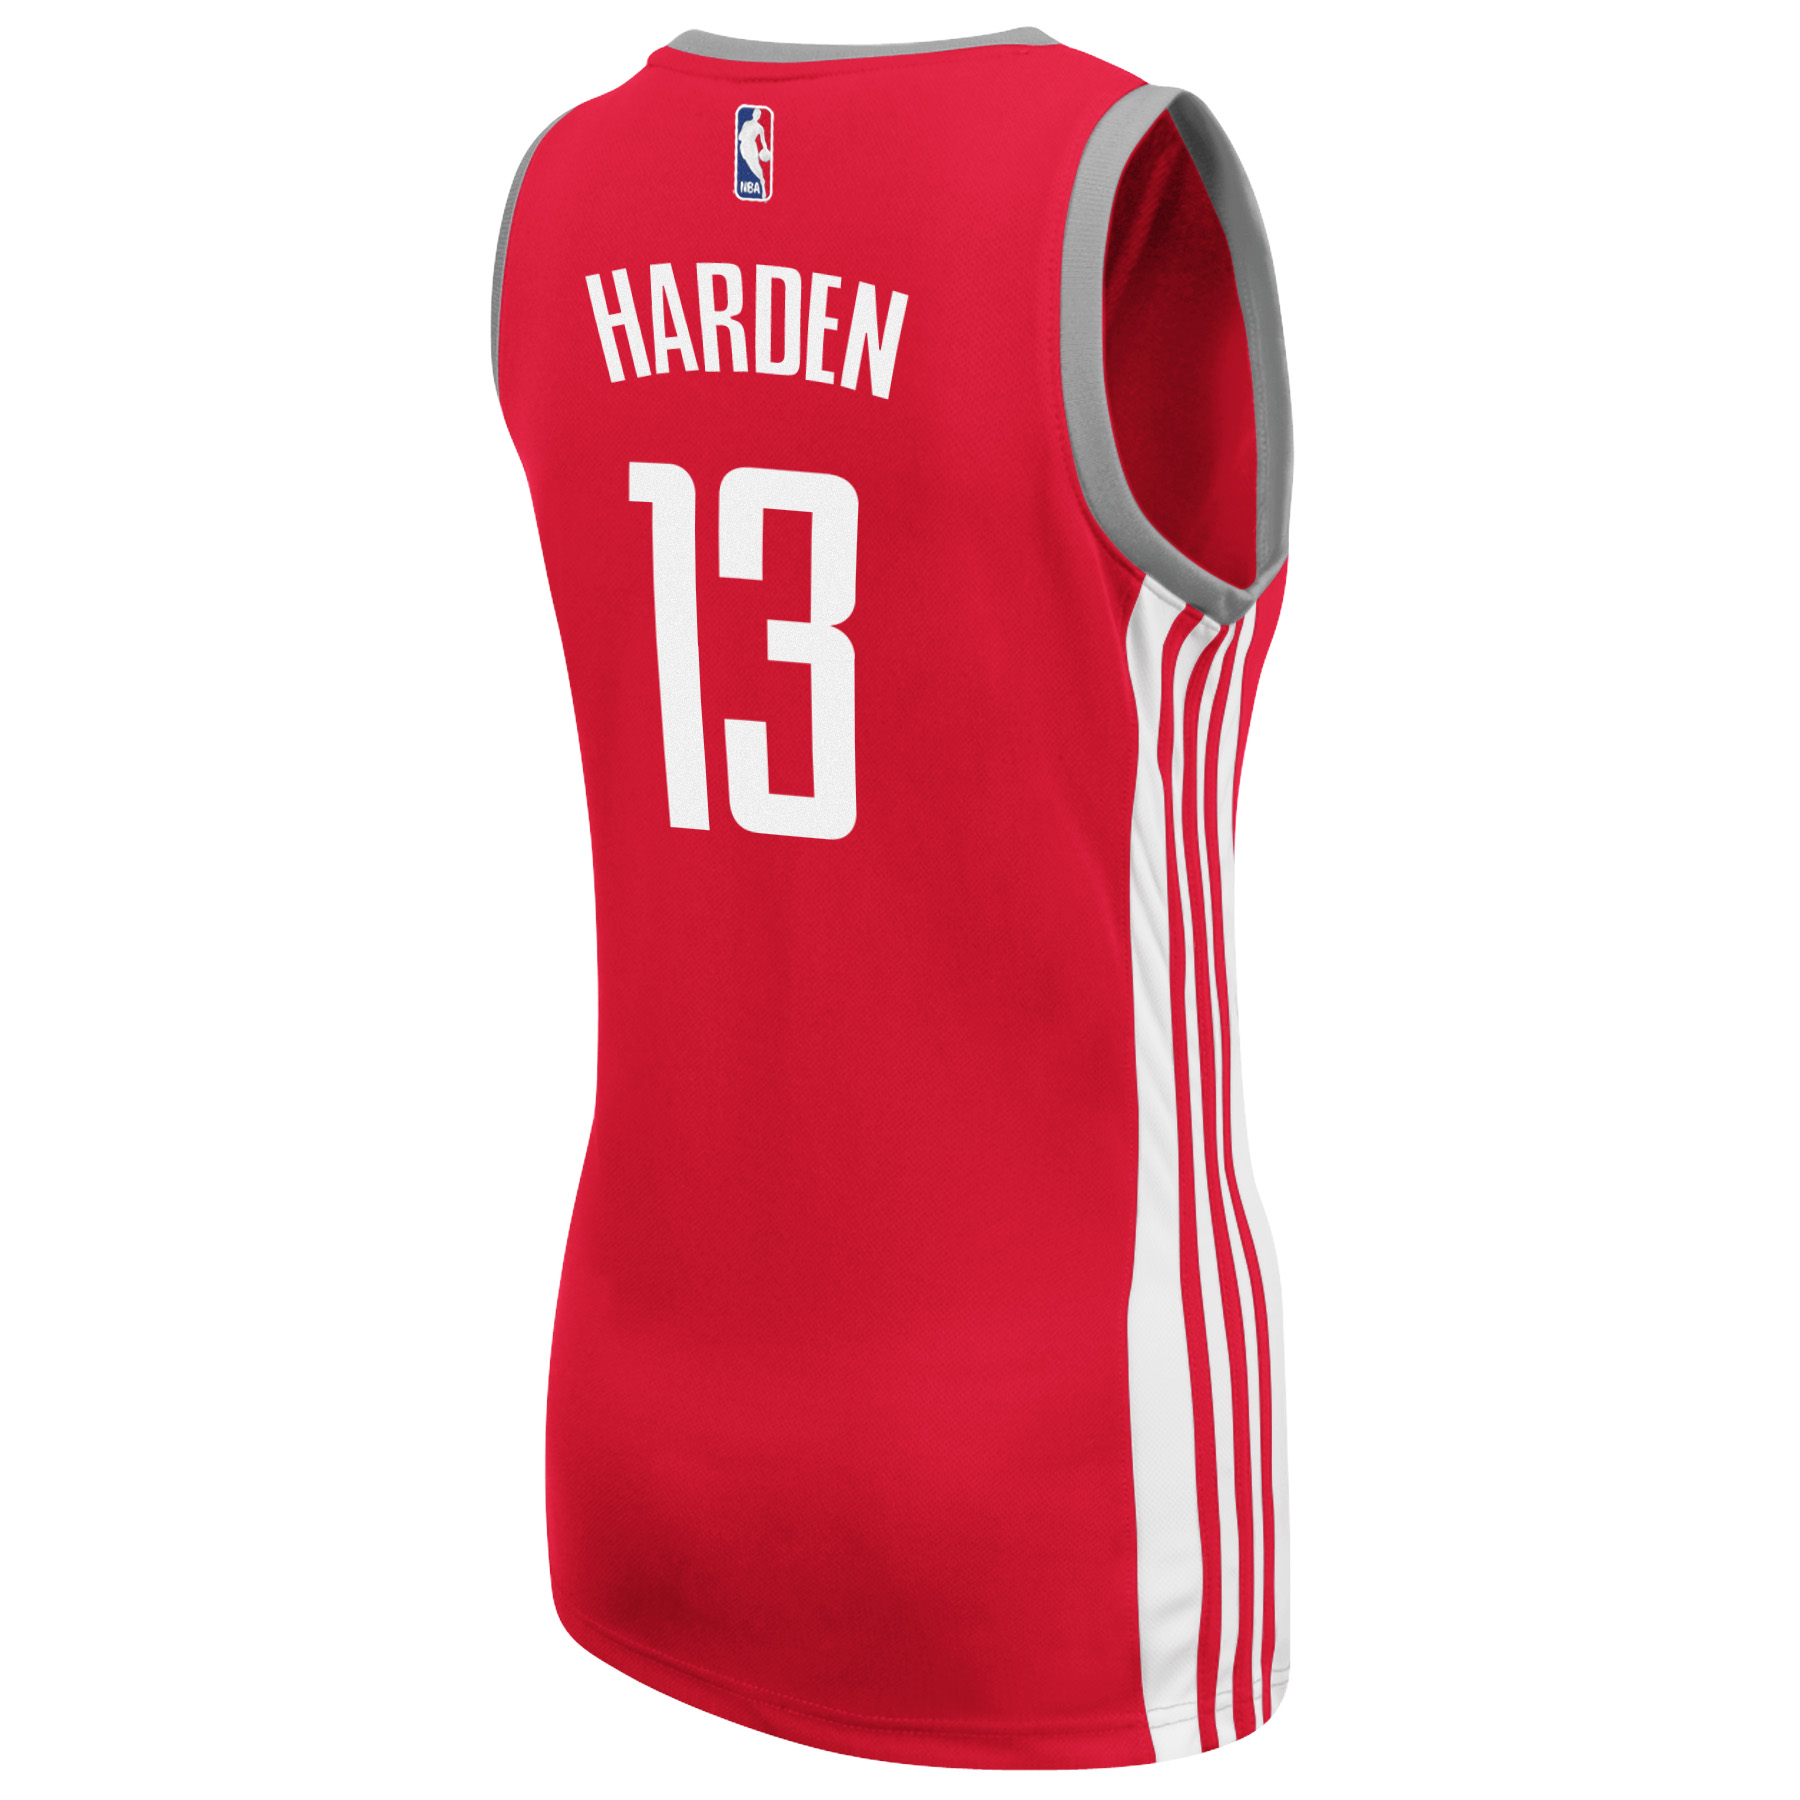 James Harden Houston Rockets Adidas Womens Player Jersey (Red)